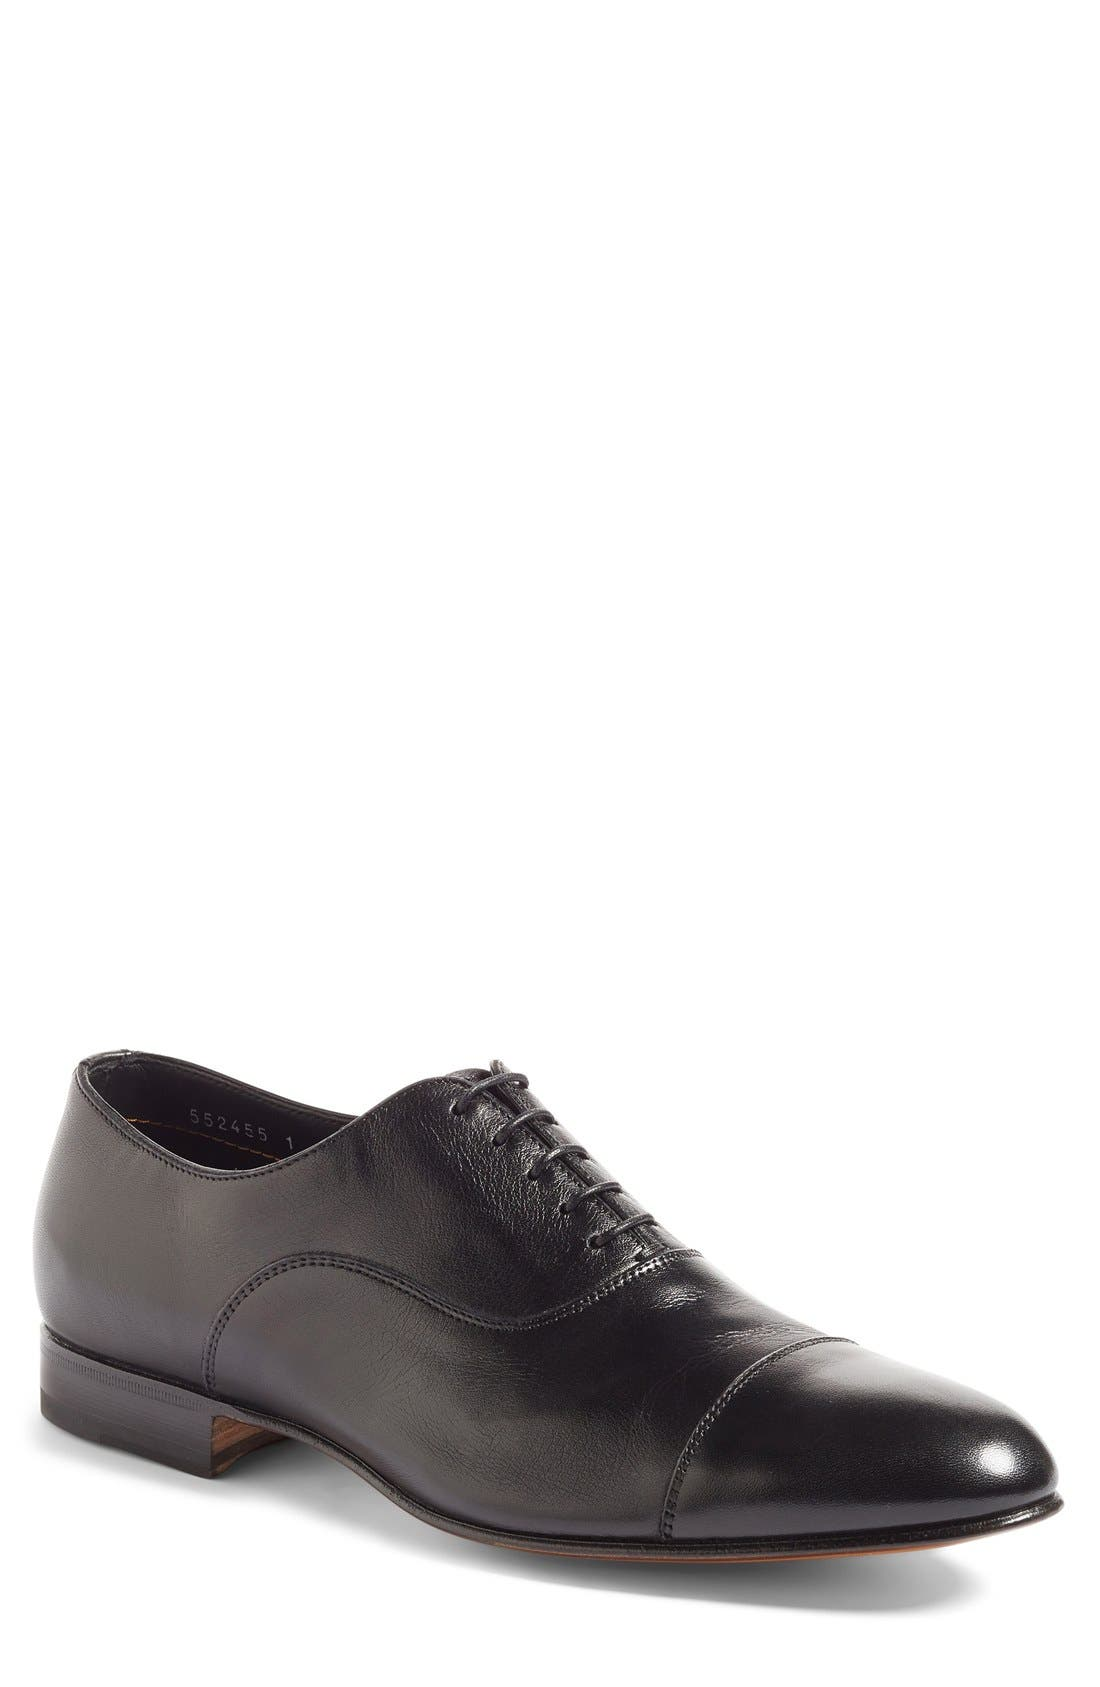 Darian Cap Toe Oxford,                             Main thumbnail 1, color,                             BLACK LEATHER